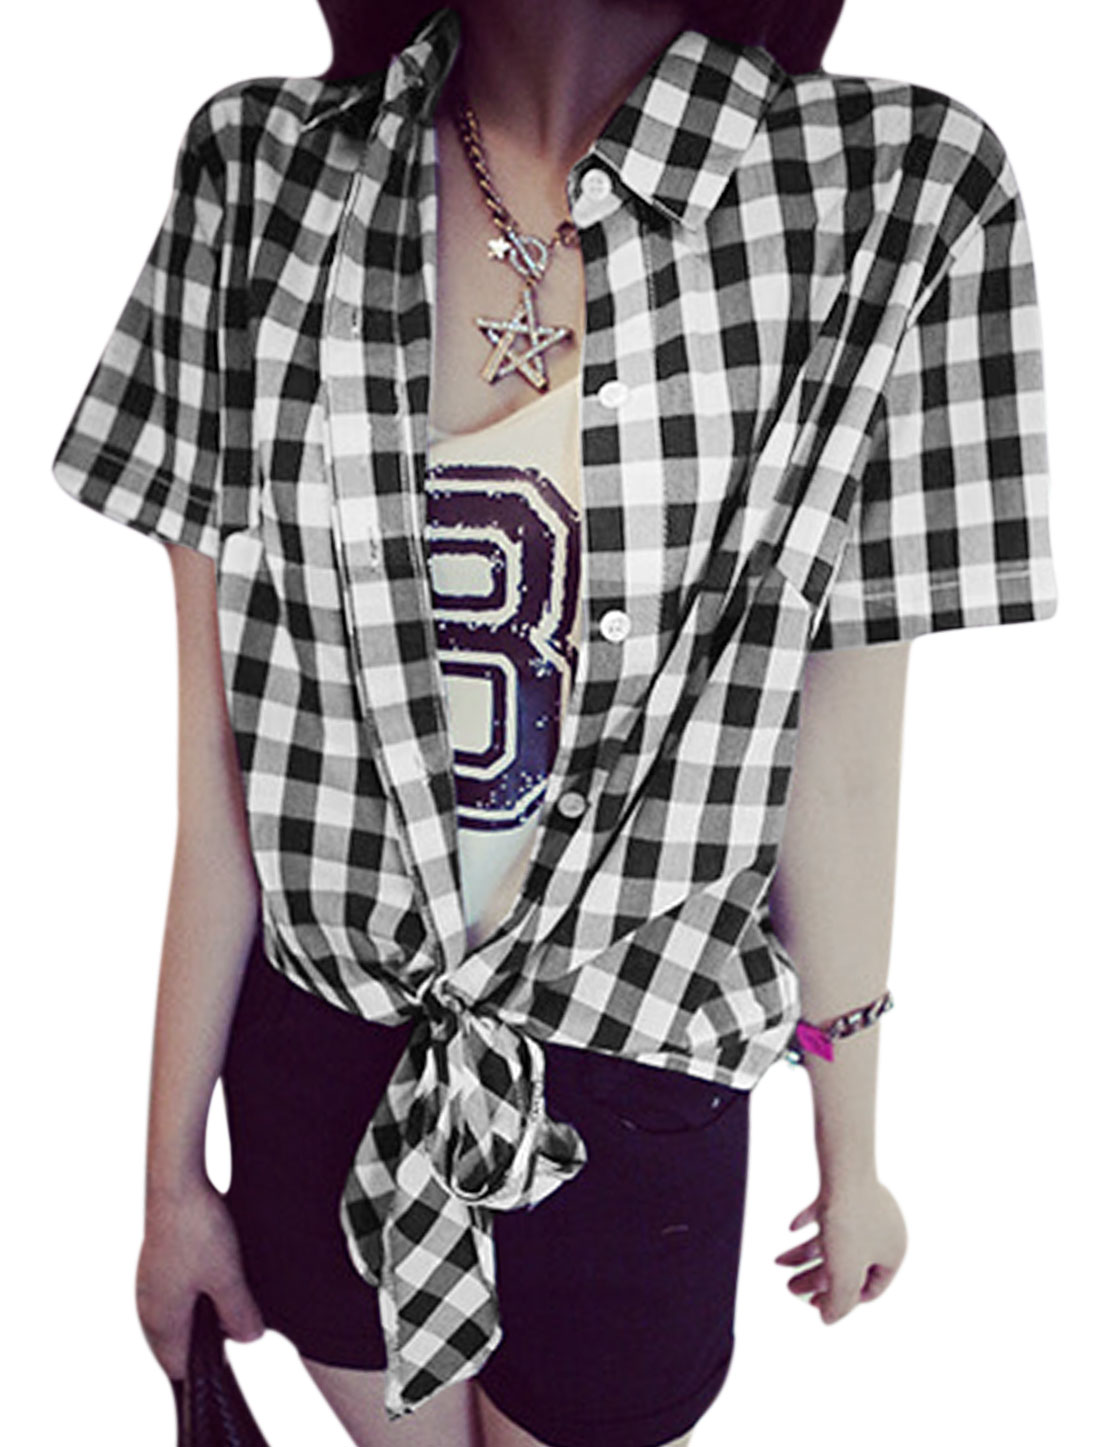 Women Plaids Pattern Button Closure Front Tie Strap Hem Casual Top Black XS